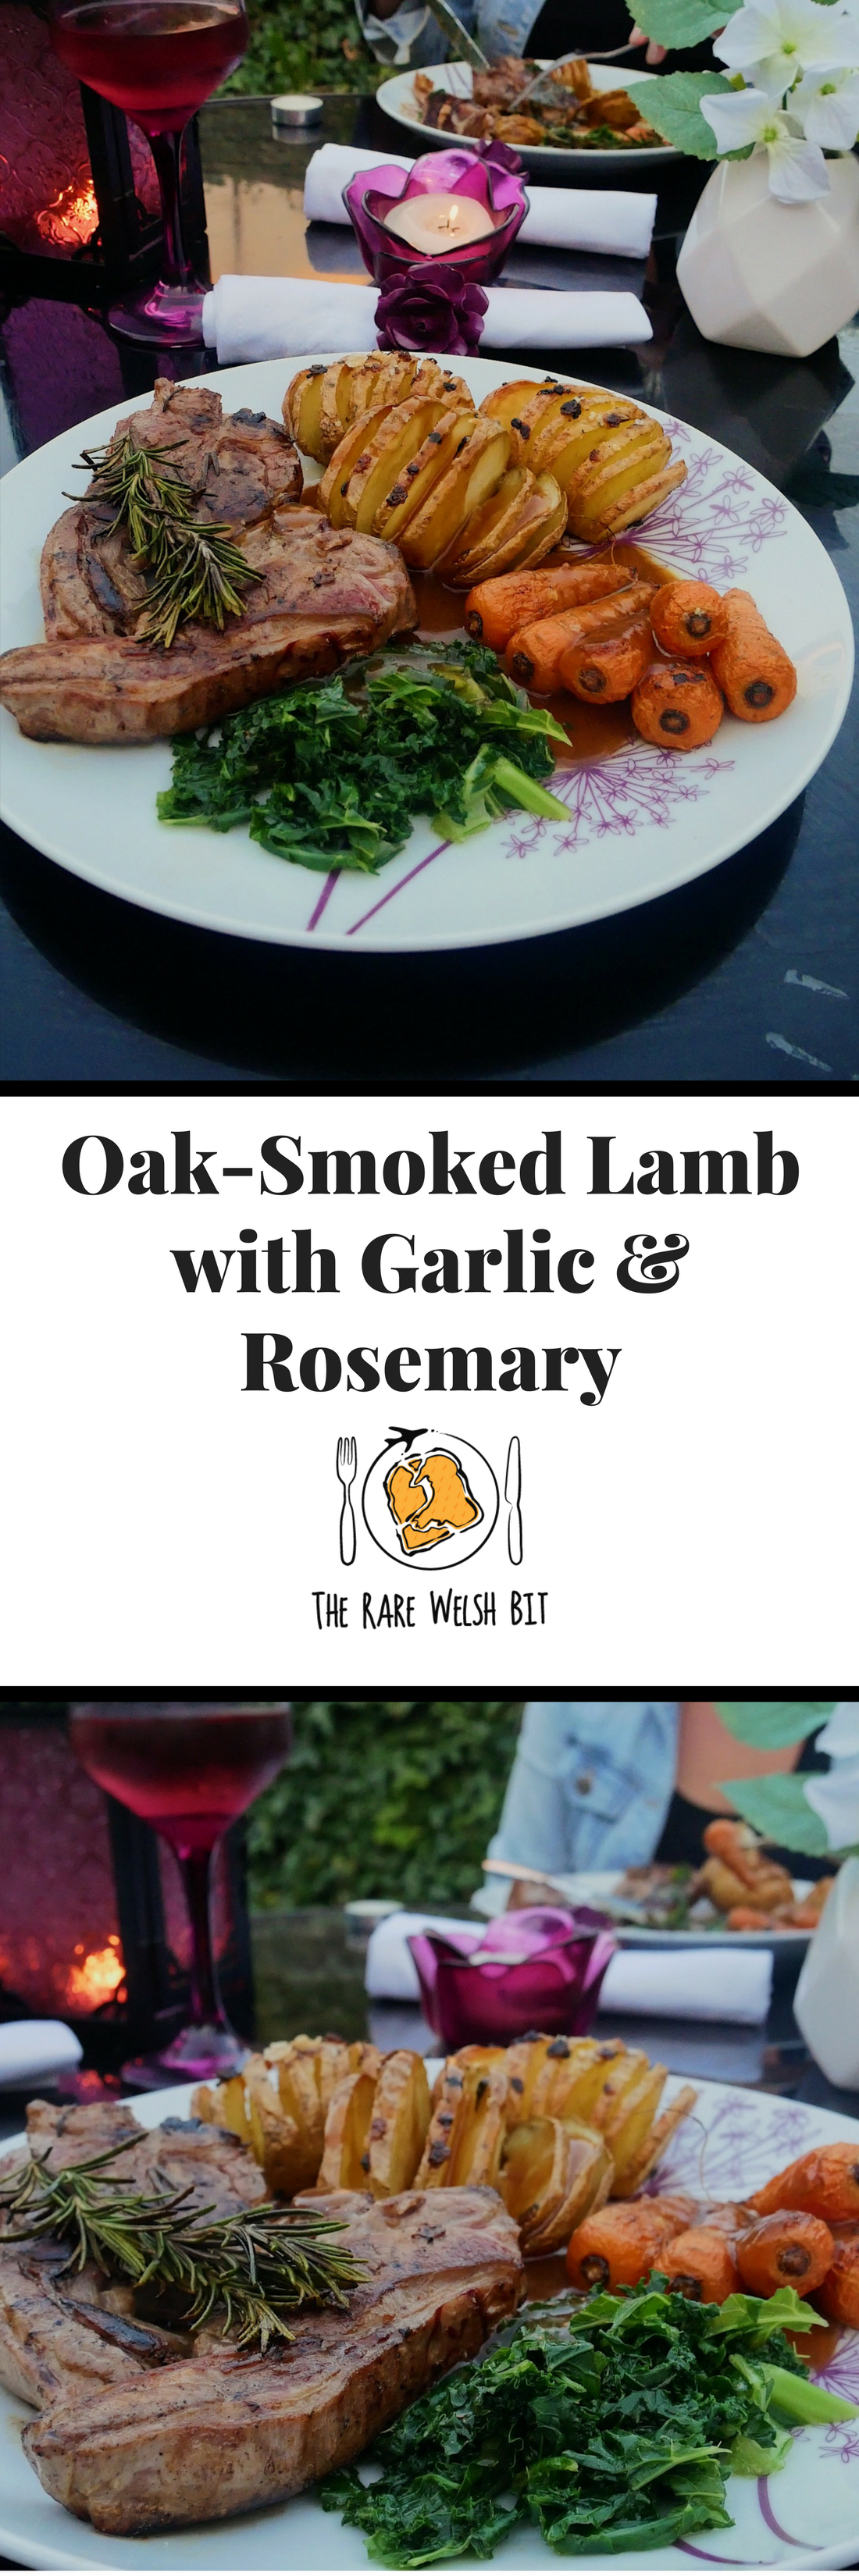 As far as lamb recipes go, this recipe for oak-smoked lamb chops with garlic and rosemary is guaranteed to please! Delicious served with Hasselback potatoes and seasonal veg. This quick and easy lamb recipe is ready in just 20 minutes (excluding marinating time). #lamb #lambrecipes #lamblover #welshlamb #oaksmokedwater #halenmon #garlic #rosemary